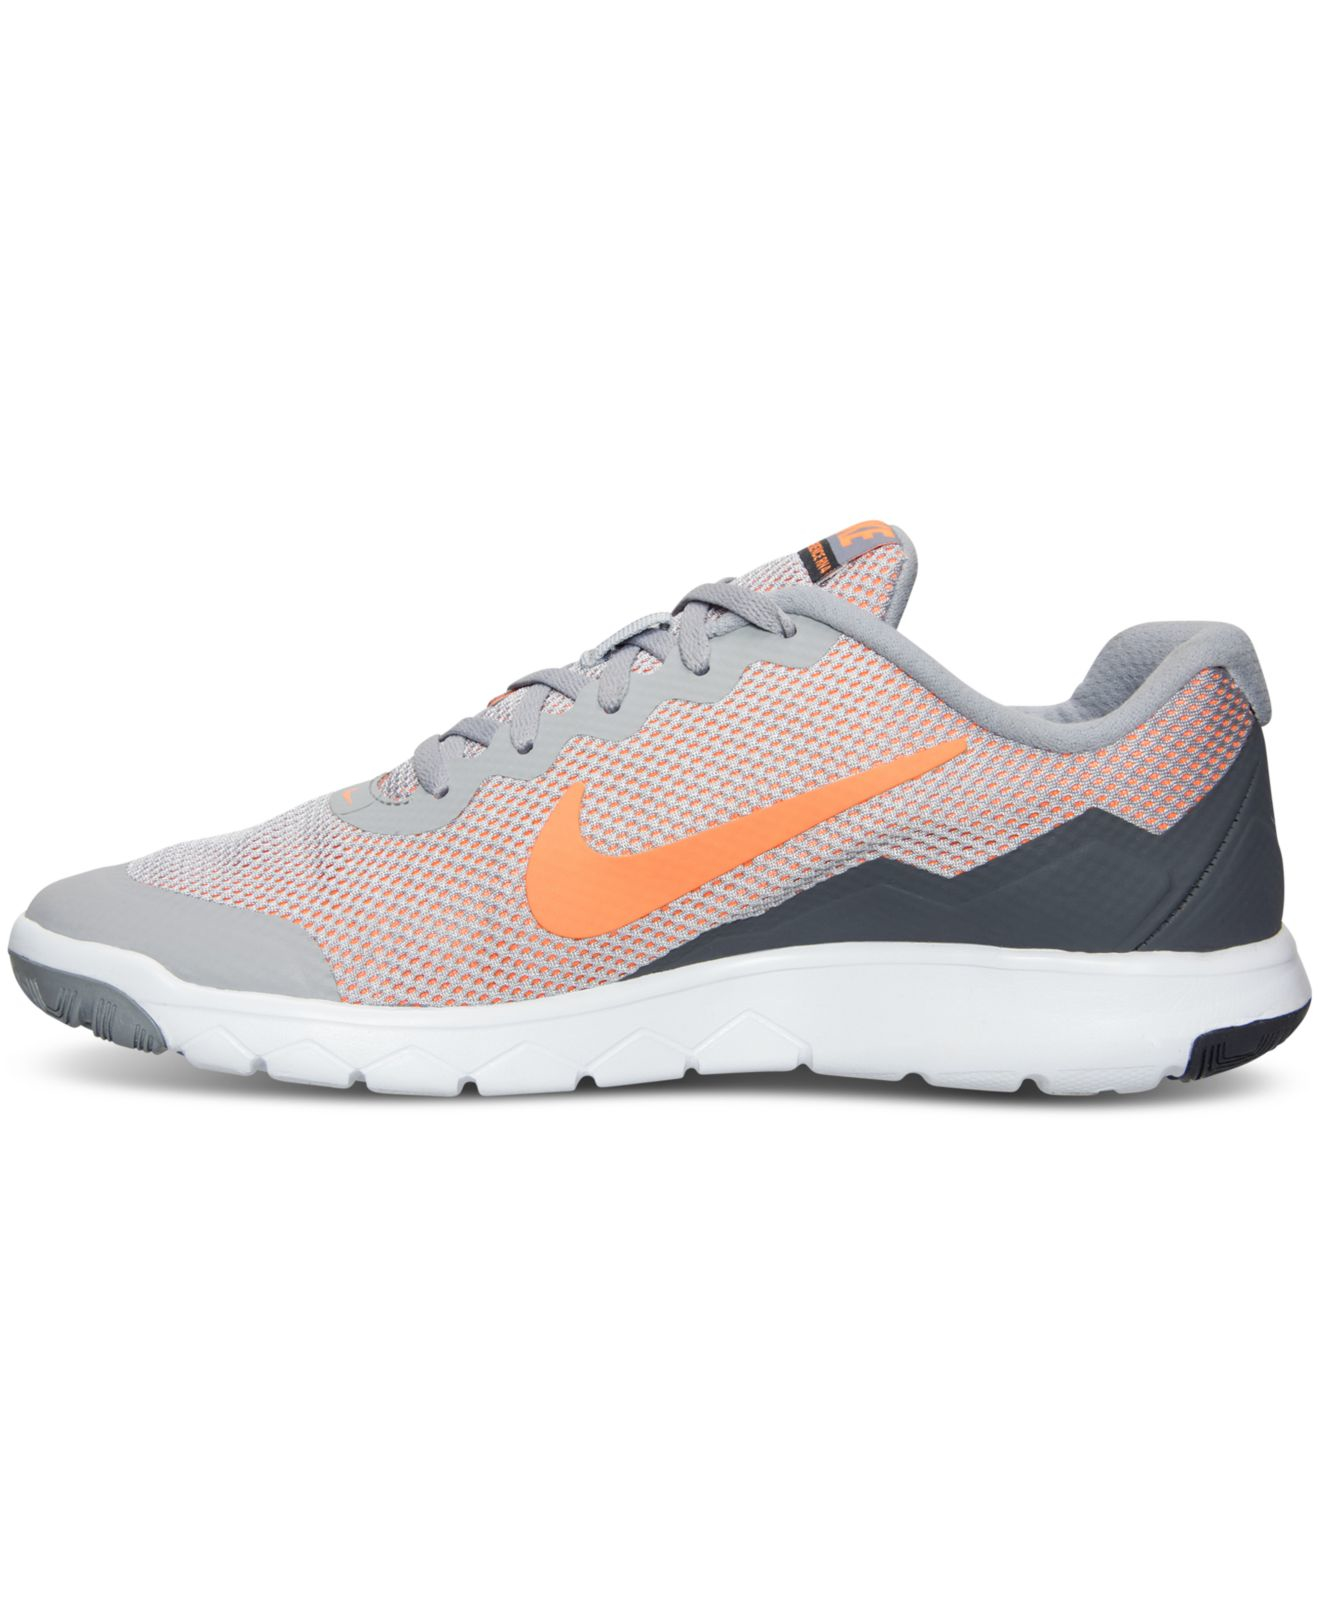 Nike Mens Running Shoes Wide Width